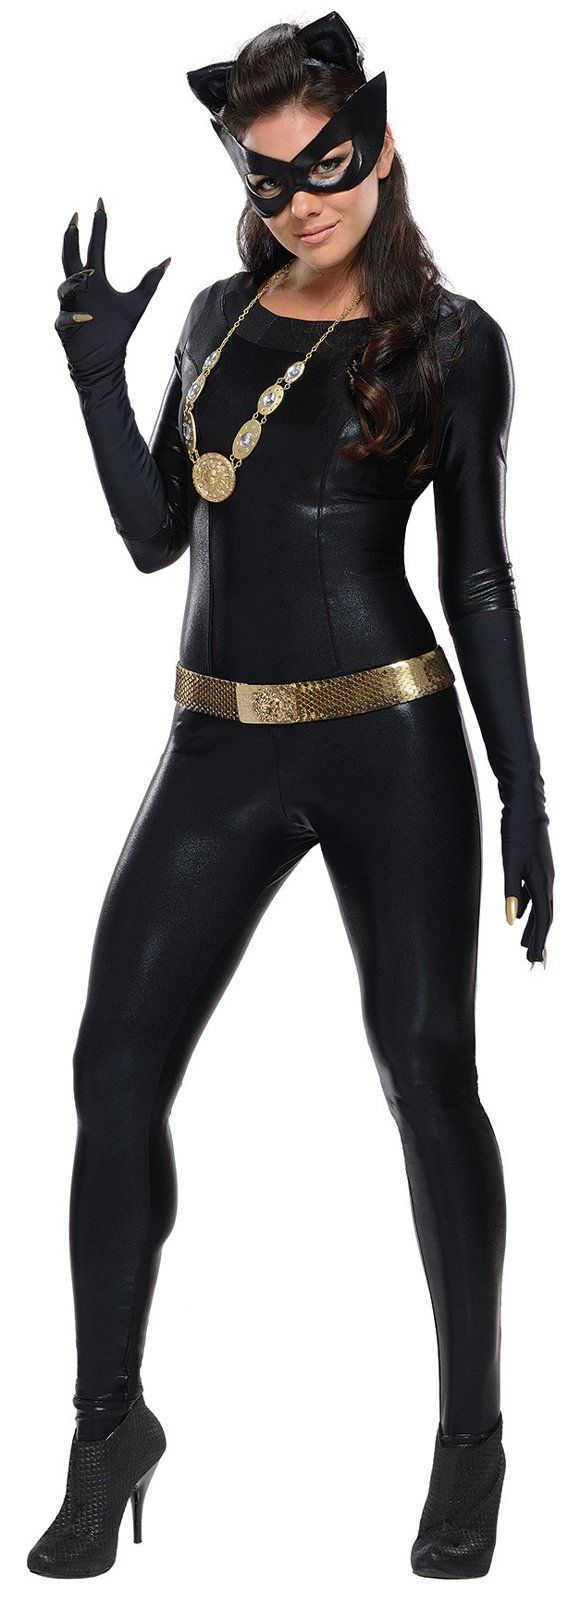 Batman Classic 1966 Series Grand Heritage Catwoman Adult Costume from BuyCostumes.com